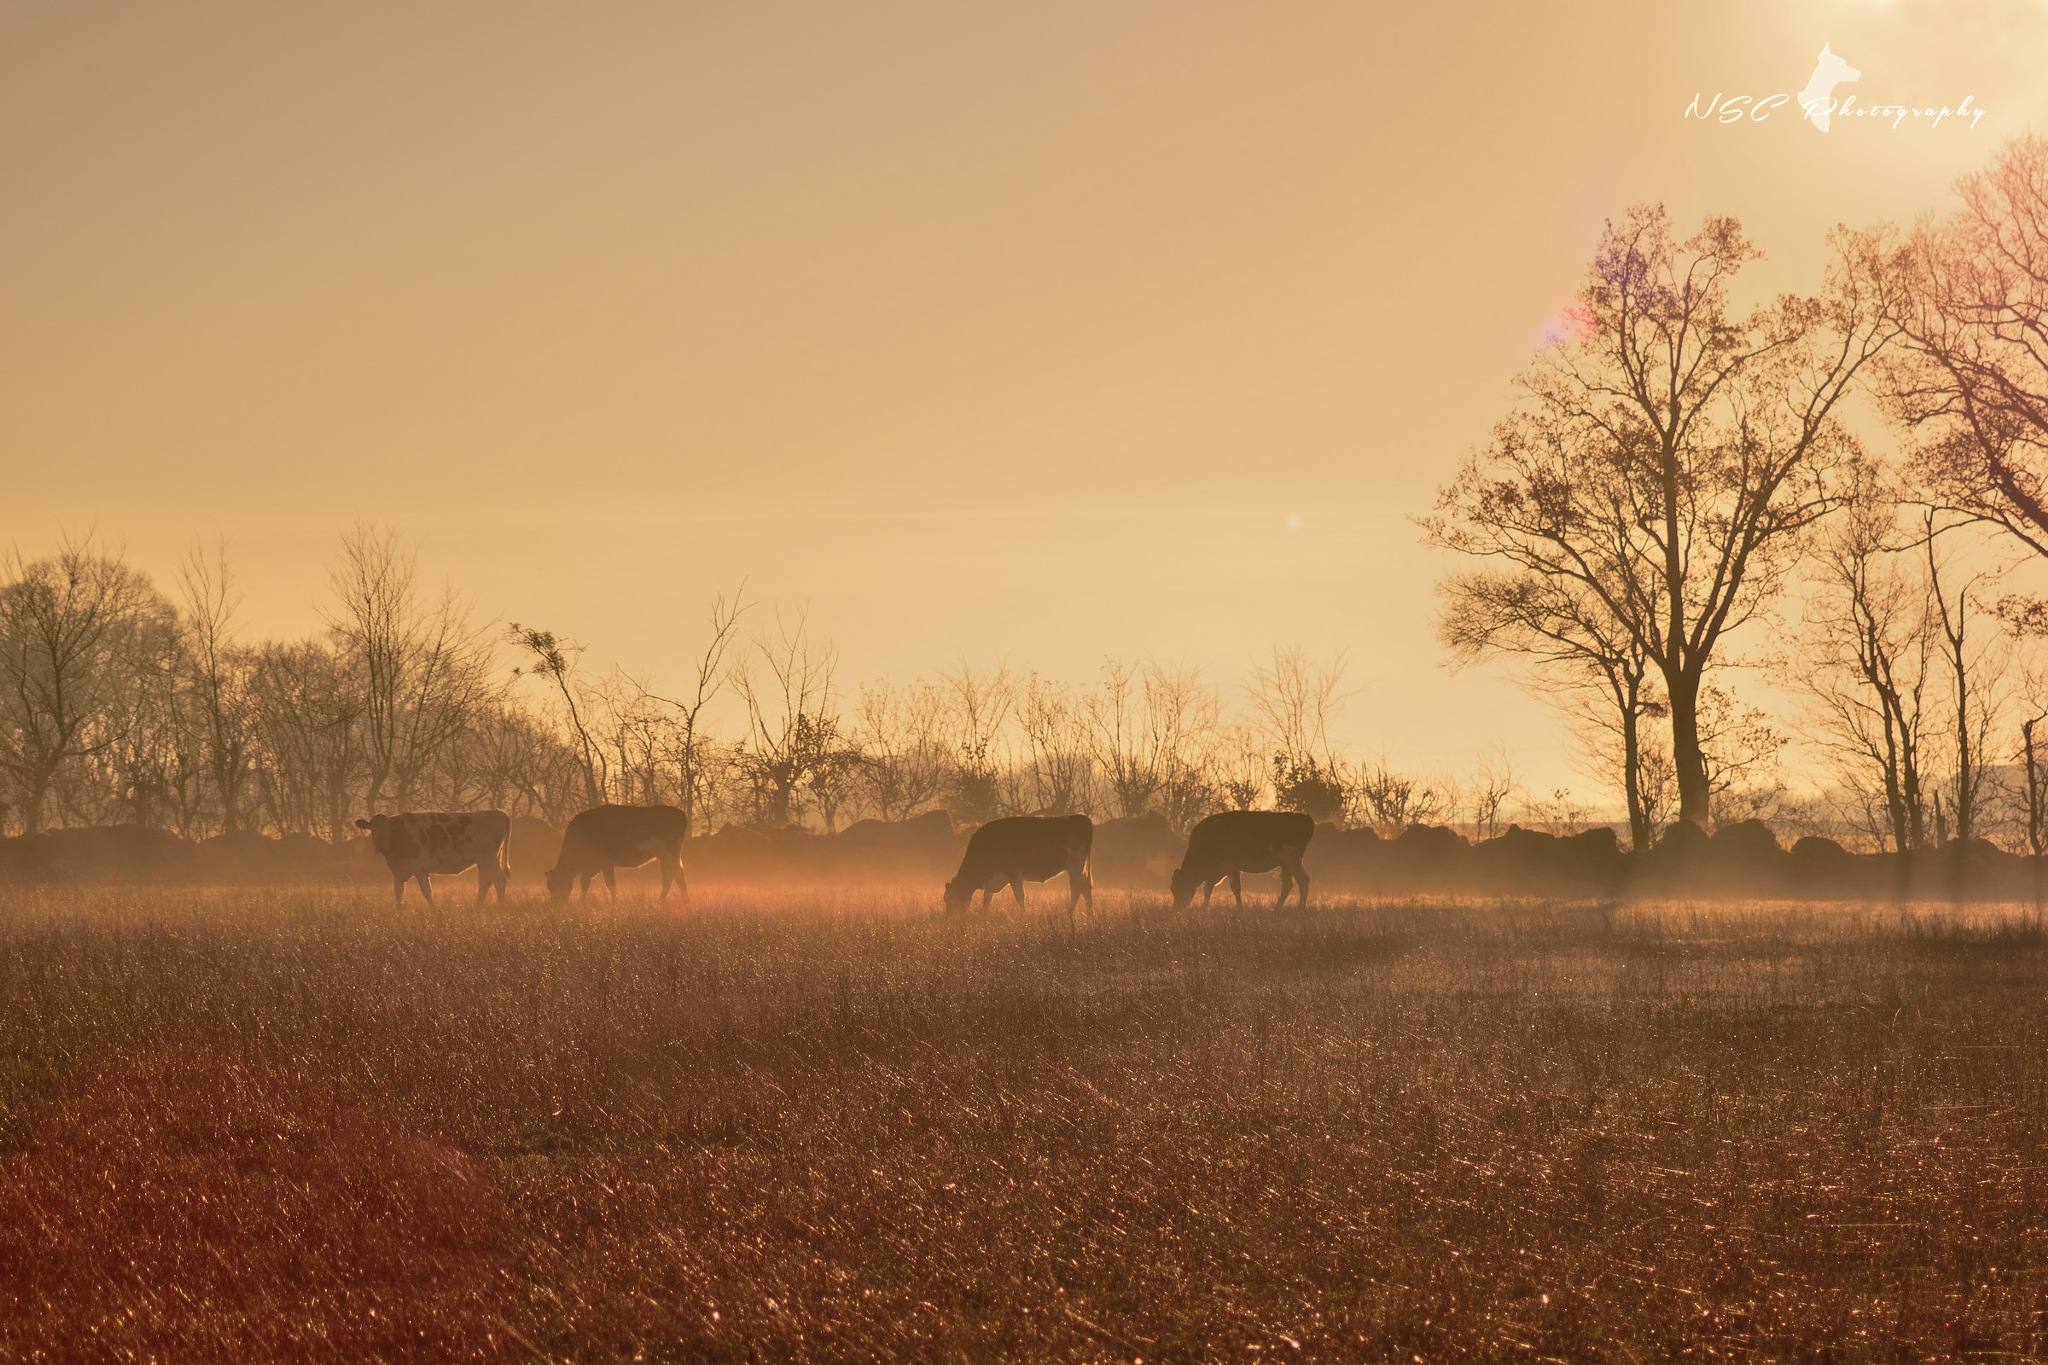 Cows at dawn by NSC Photography